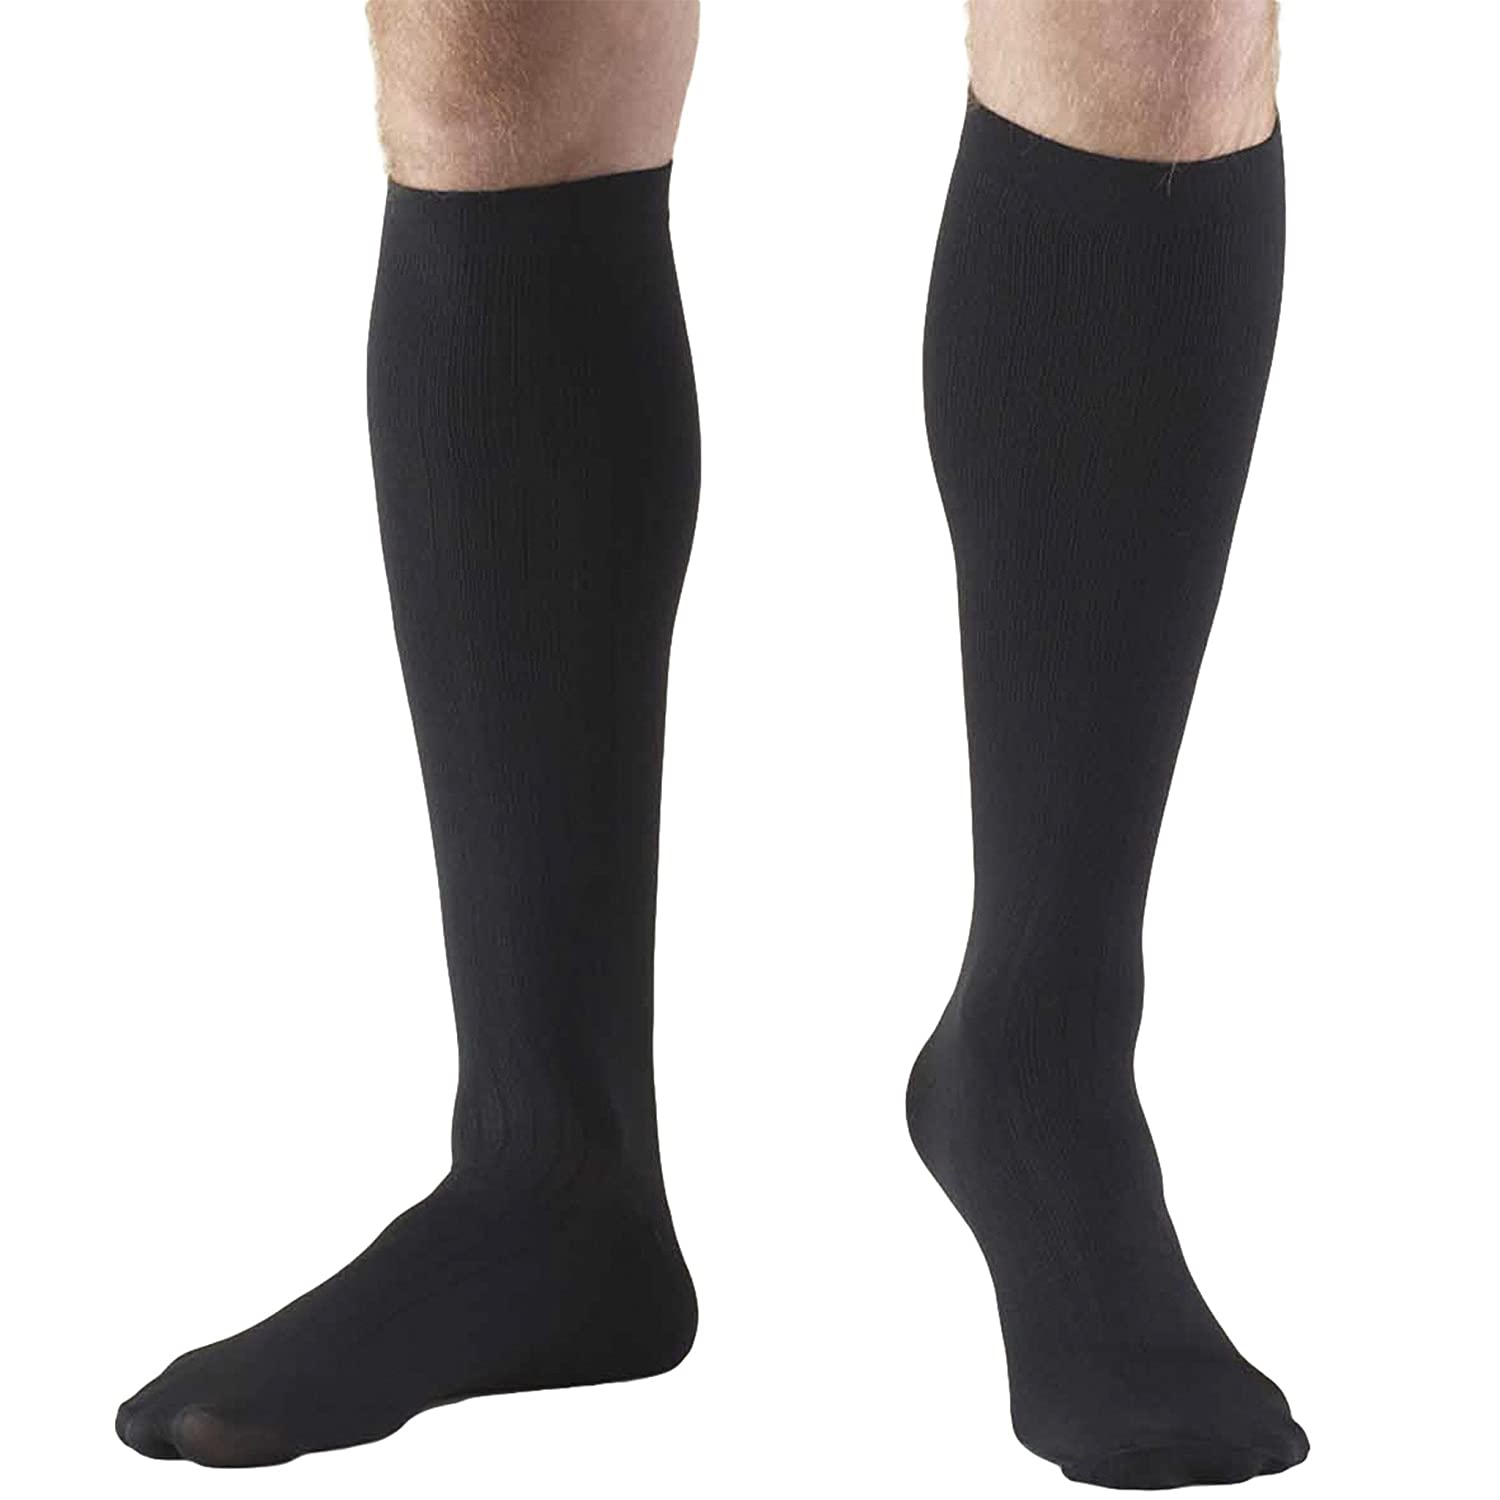 Amazon.com: Truform Compression Socks, 8-15 mmHg, Mens Dress Socks, Knee High Over Calf Length, Black, Large (8-15 mmHg): Health & Personal Care